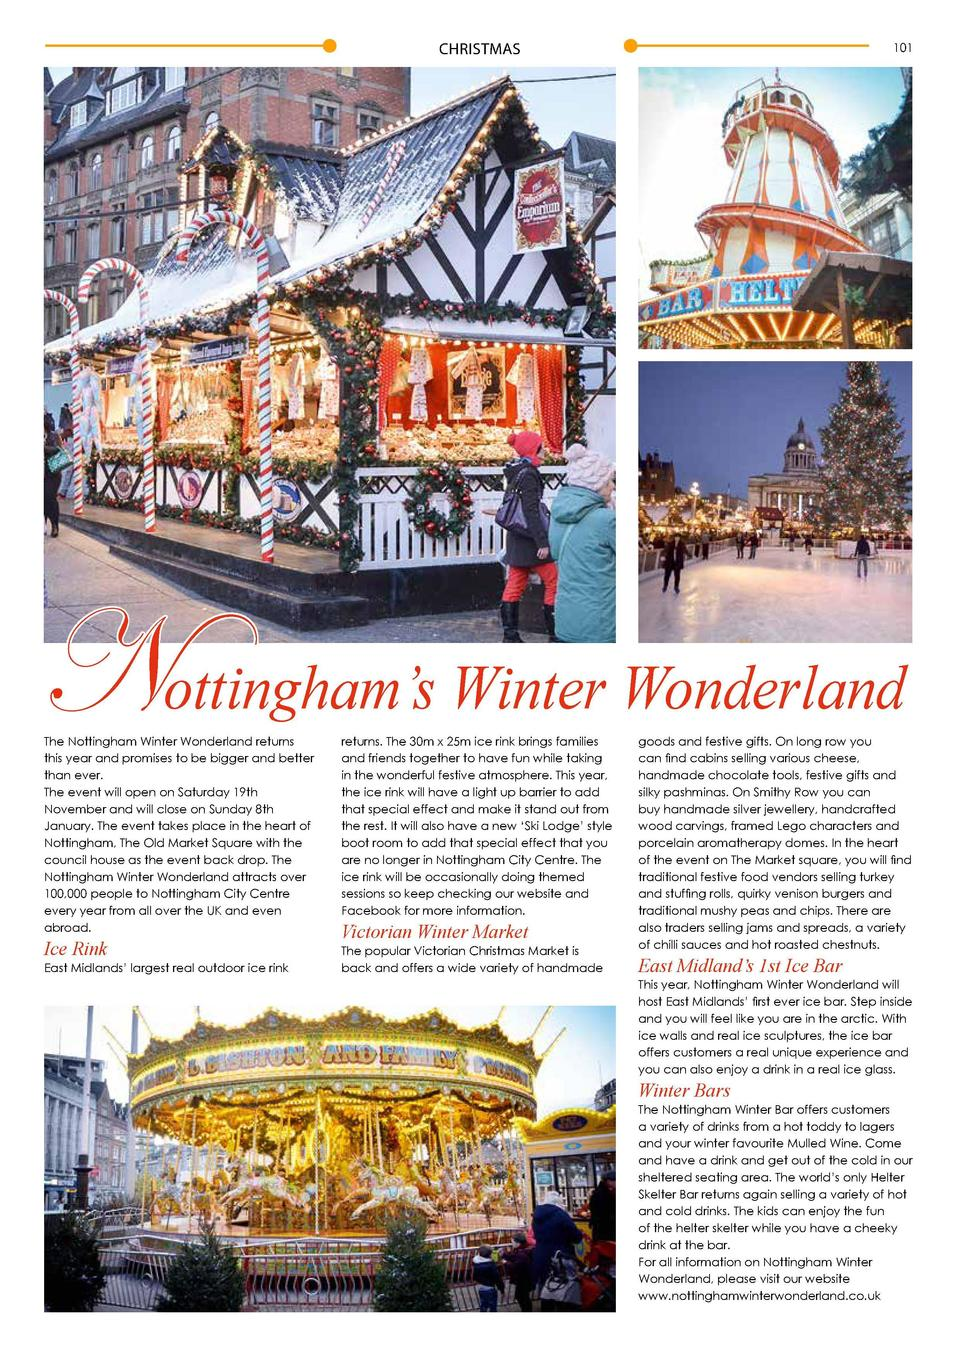 CHRISTMAS  101  Nottingham   s Winter Wonderland The Nottingham Winter Wonderland returns this year and promises to be big...